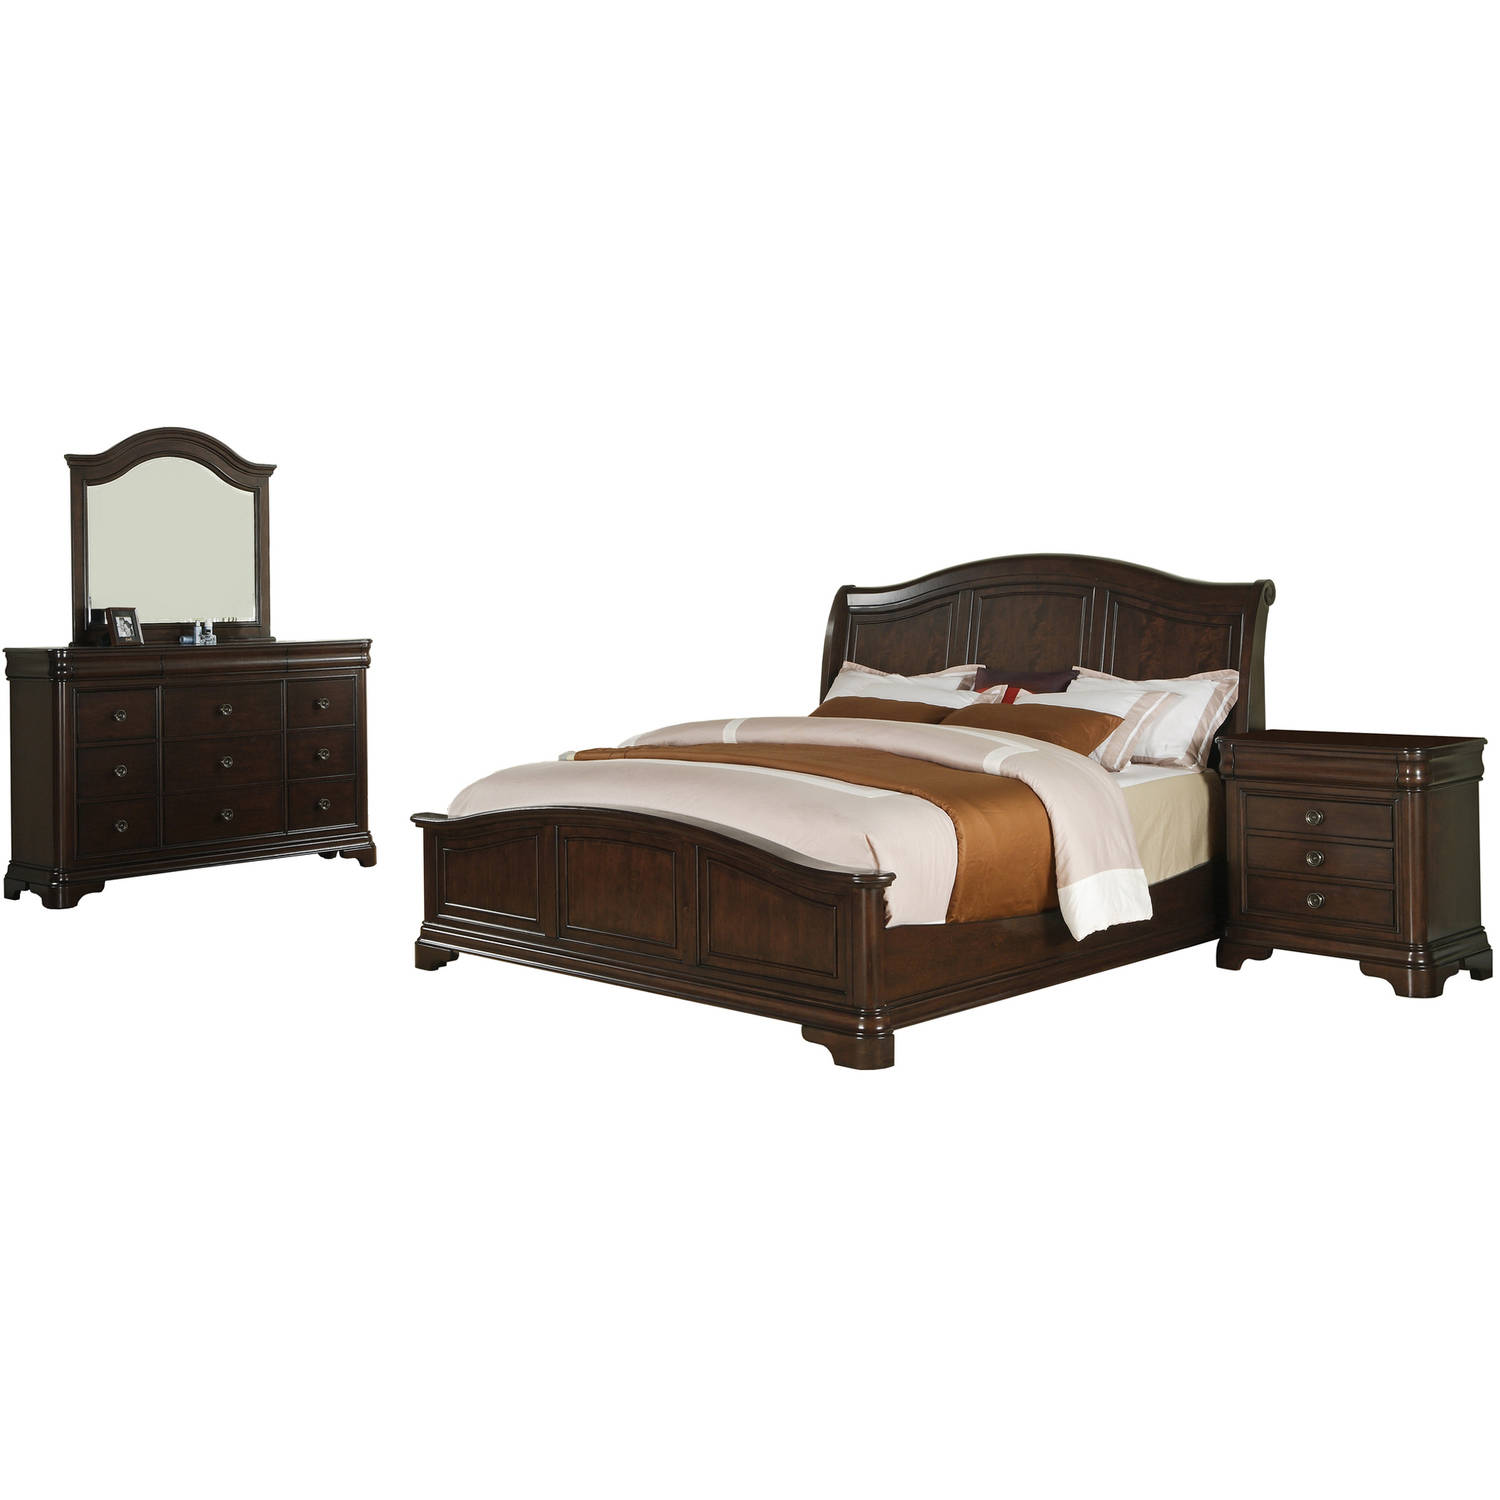 Picket House Furnishings Conley Cherry Queen Panel 4PC Bedroom Set